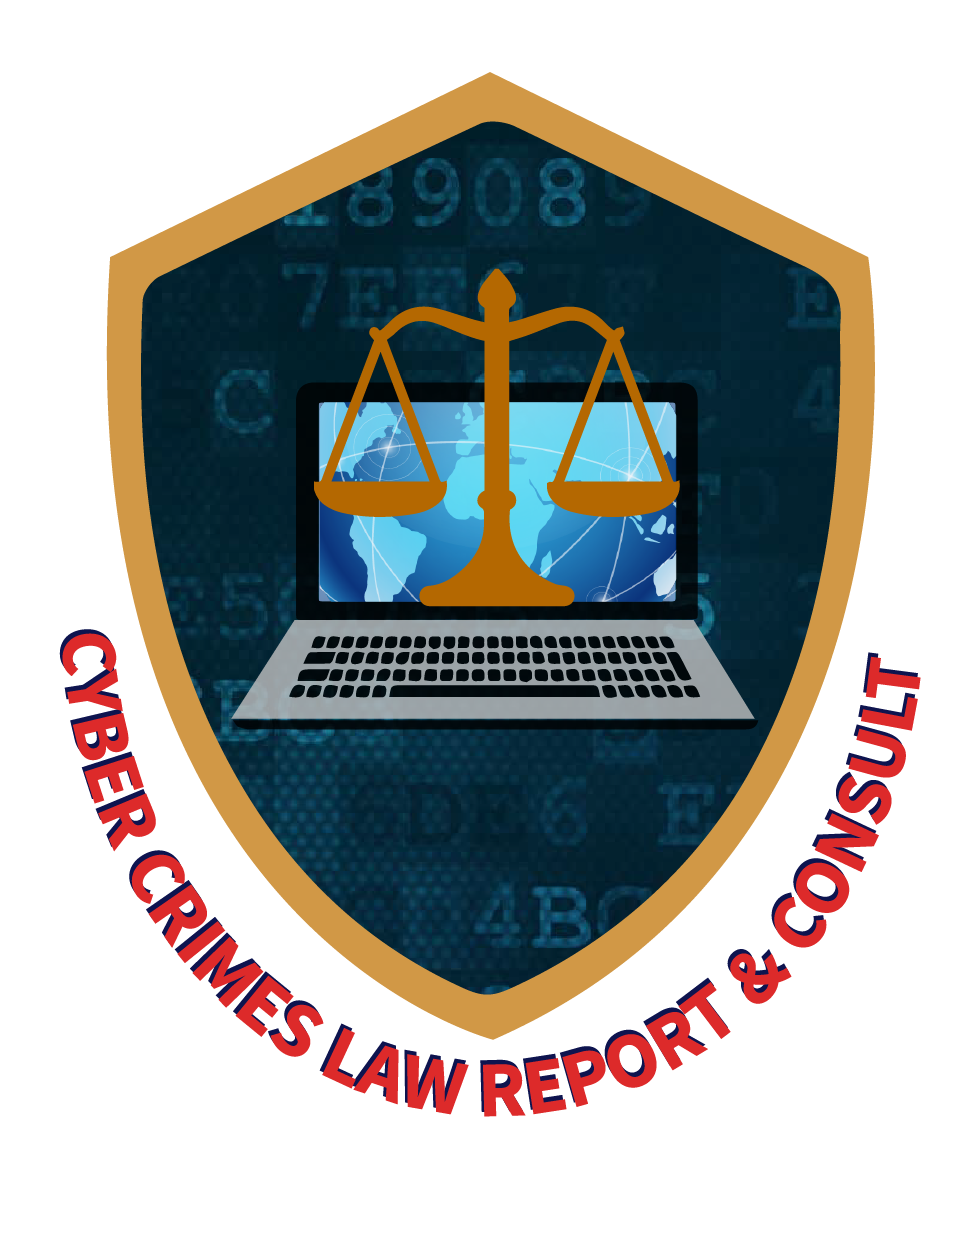 Cyber Laws Report & Consult